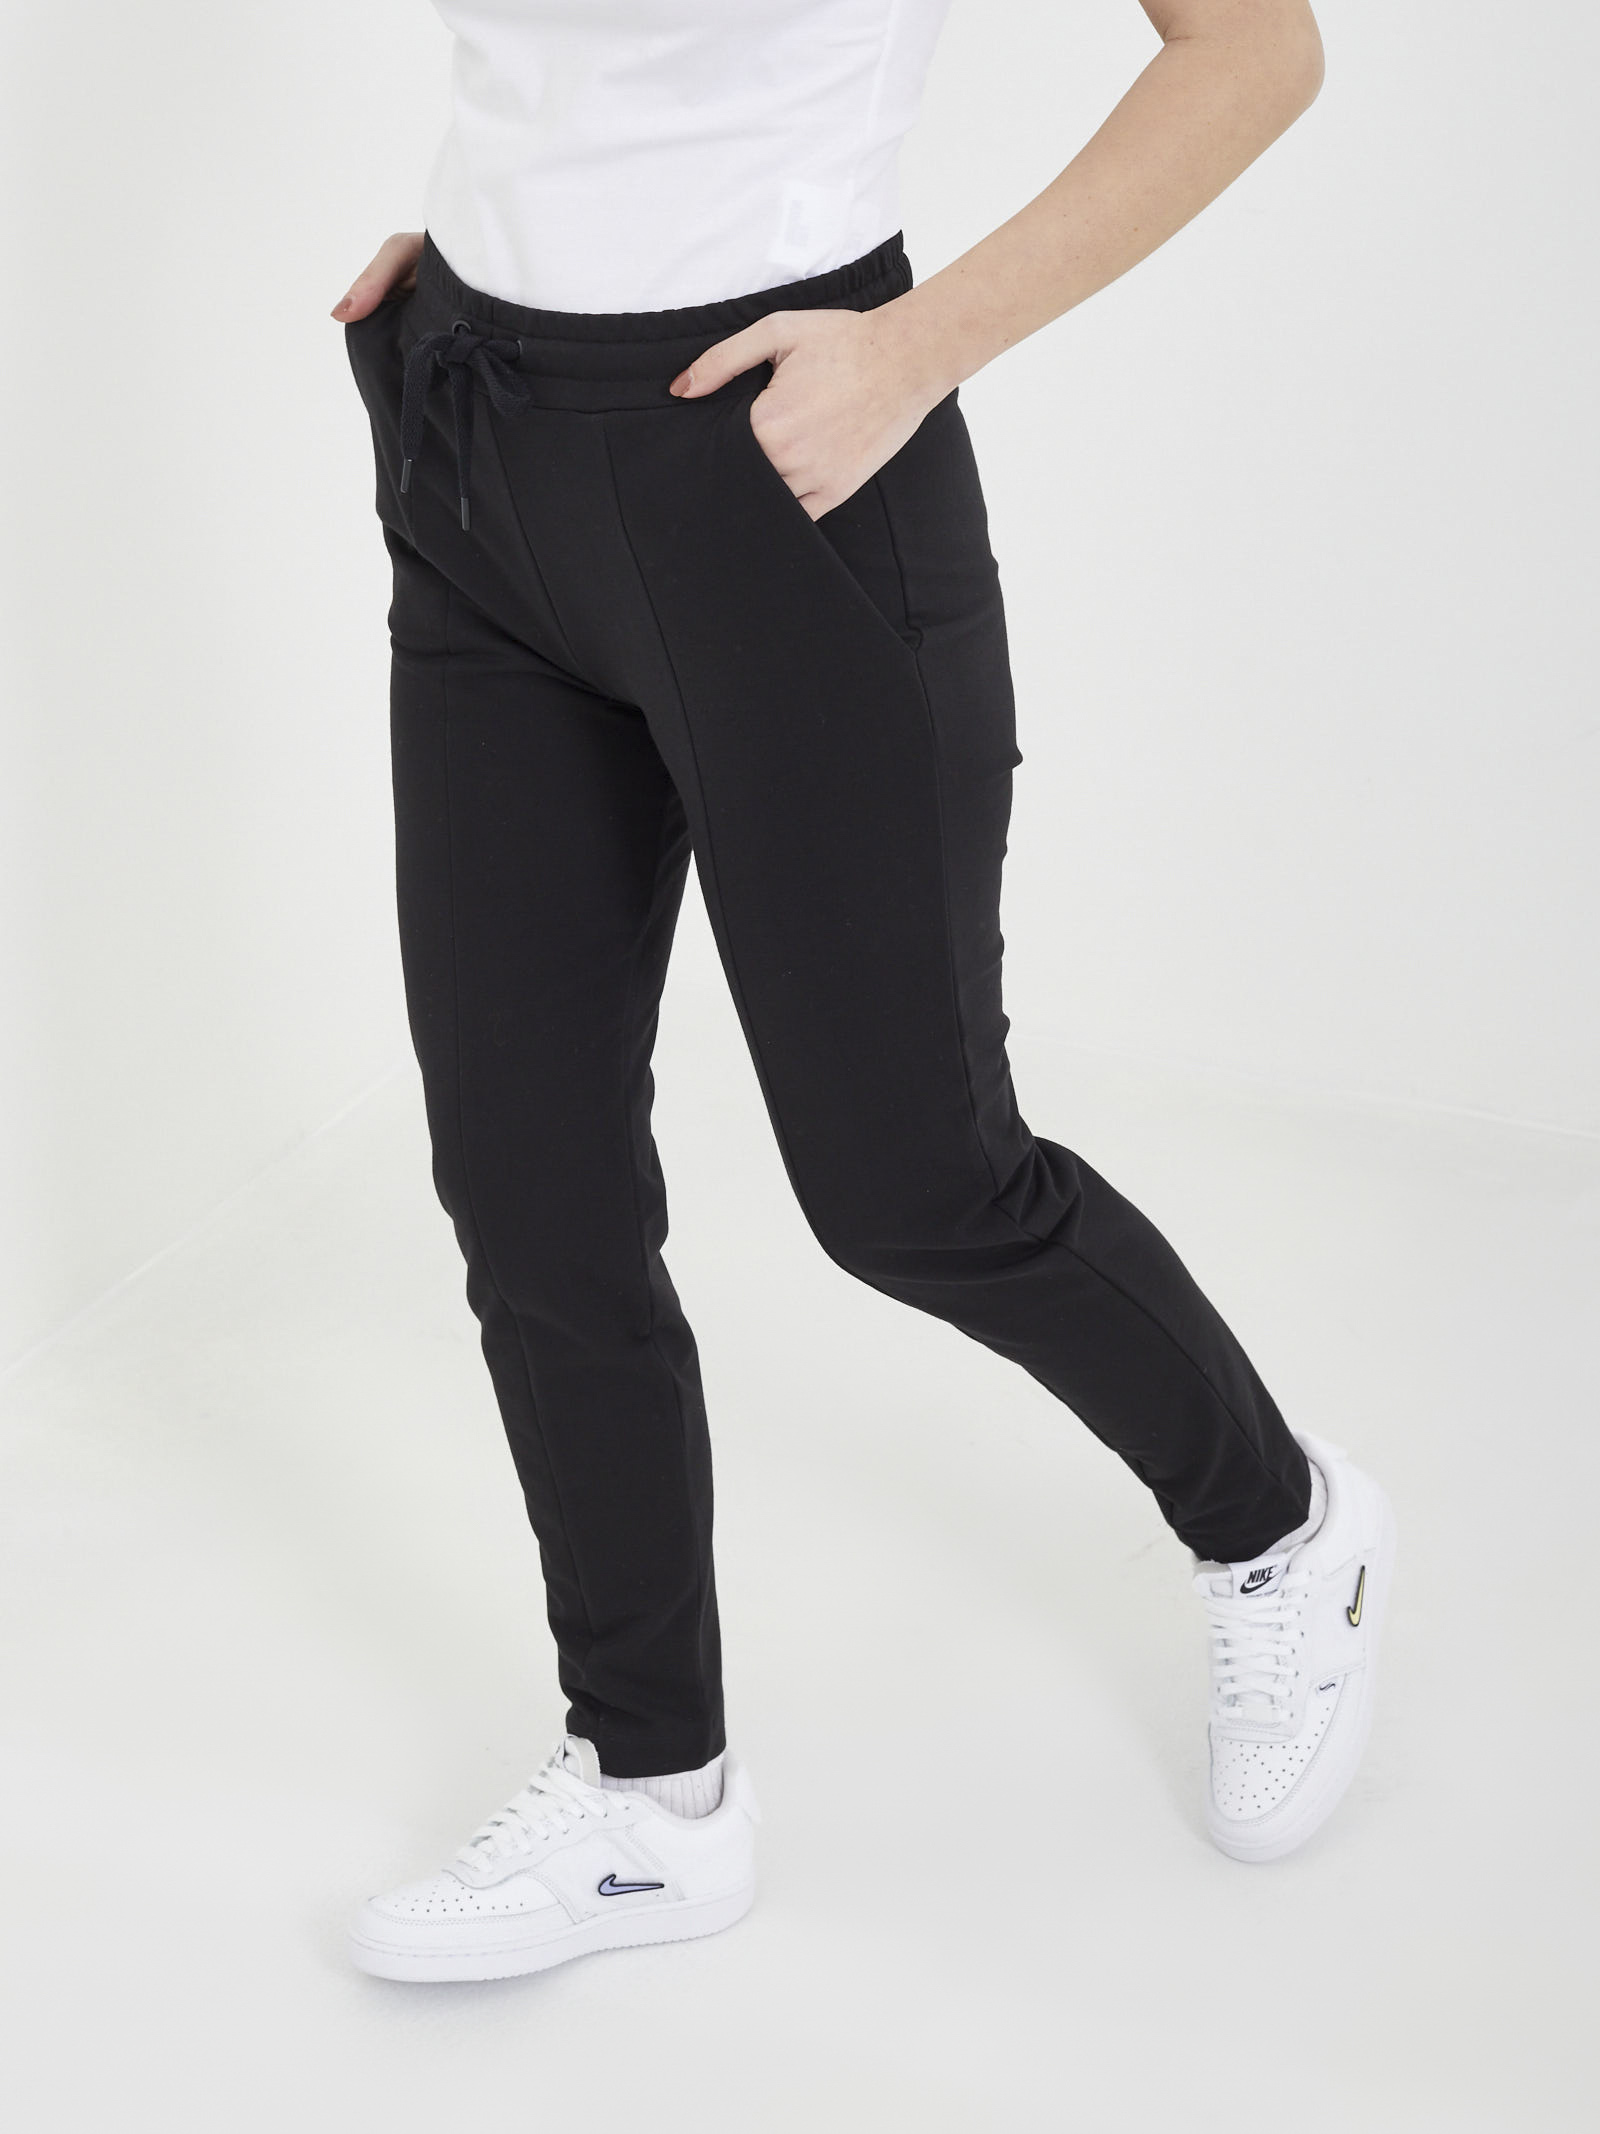 trousers MOSCHINO | Trousers | W1513 03 ENERO